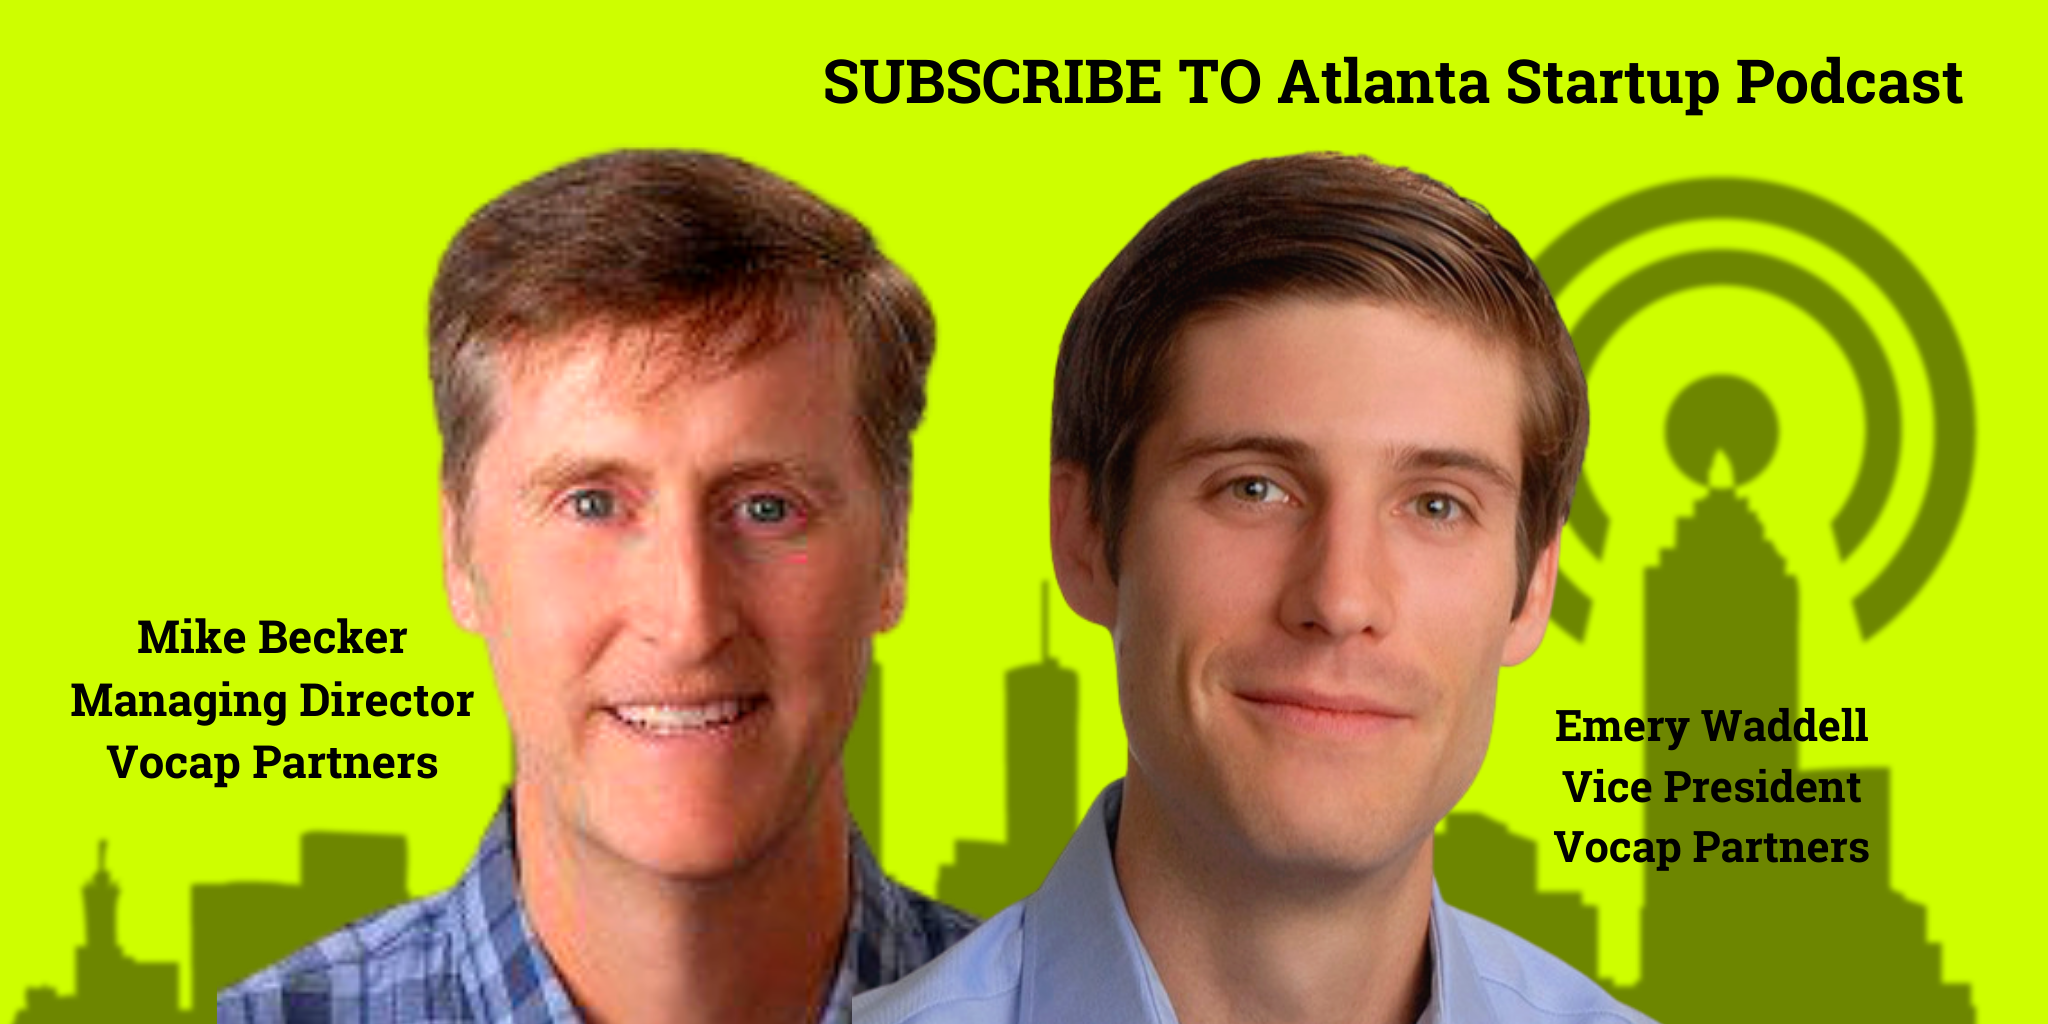 Ep. 61 – Atlanta Venture Capitalists Mike Becker and Emery Waddell on Sales Leadership in Early Stage Startups